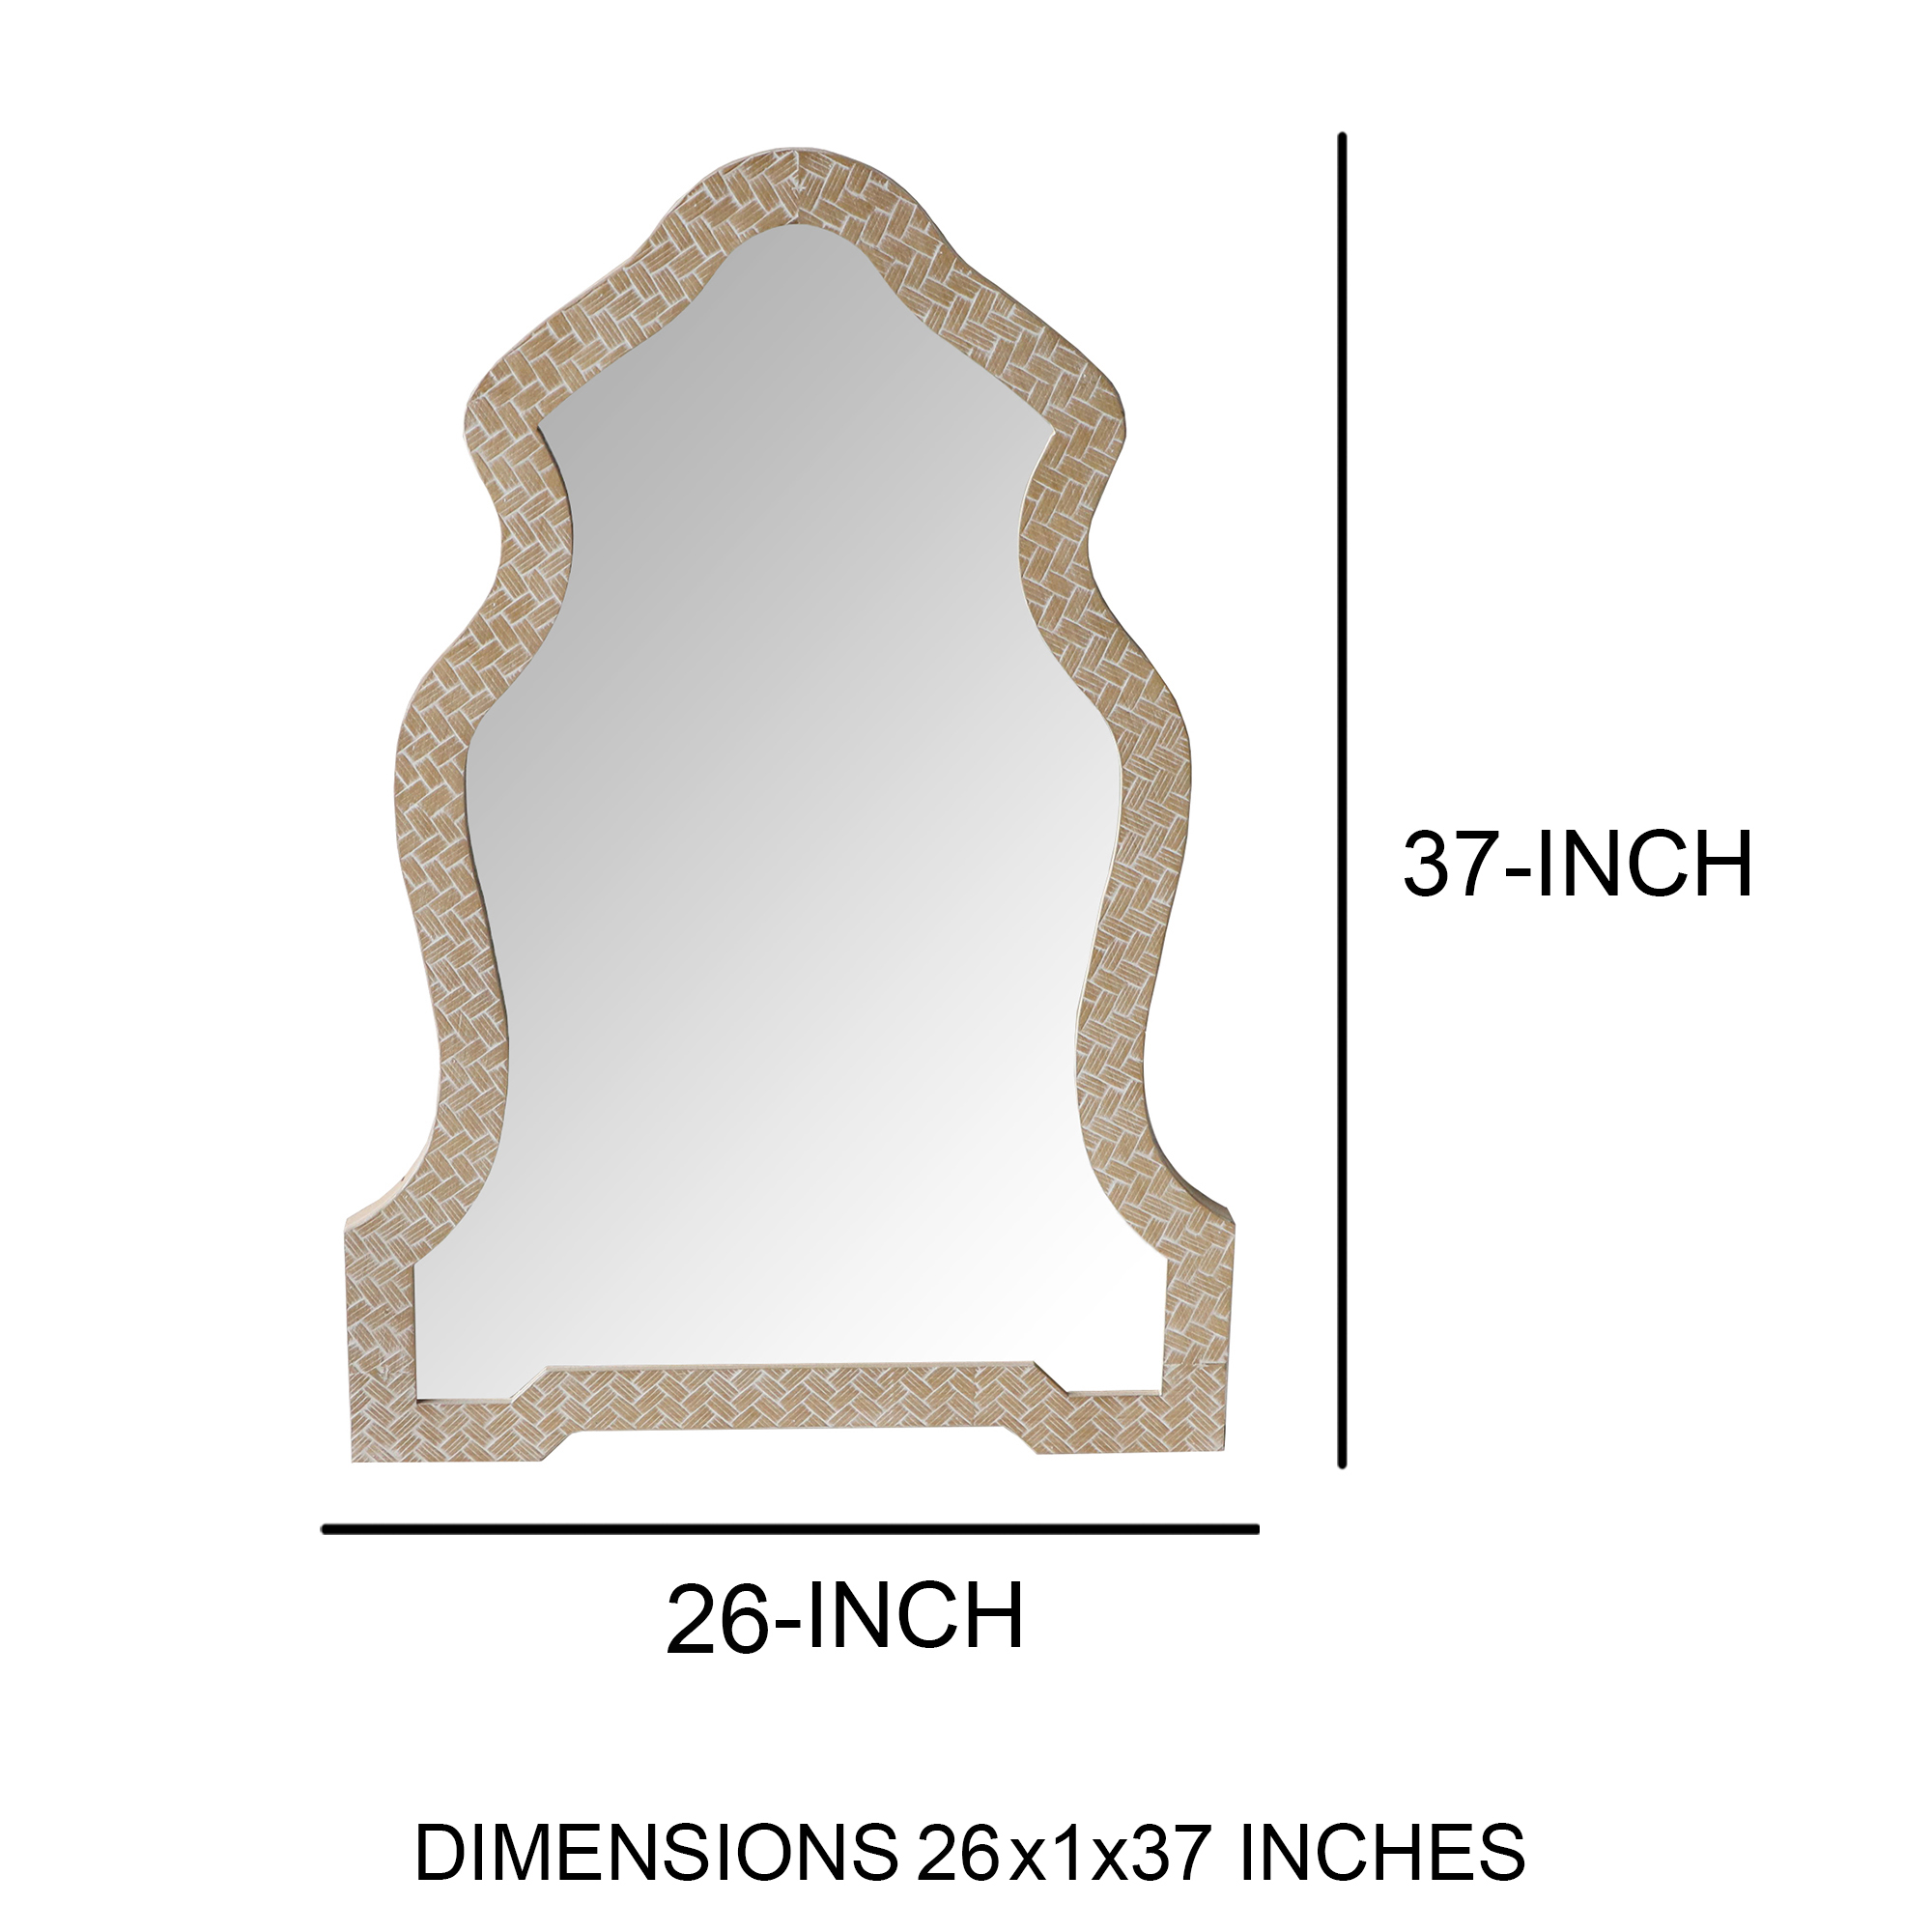 Scalloped Top Wooden Framed Wall Mirror